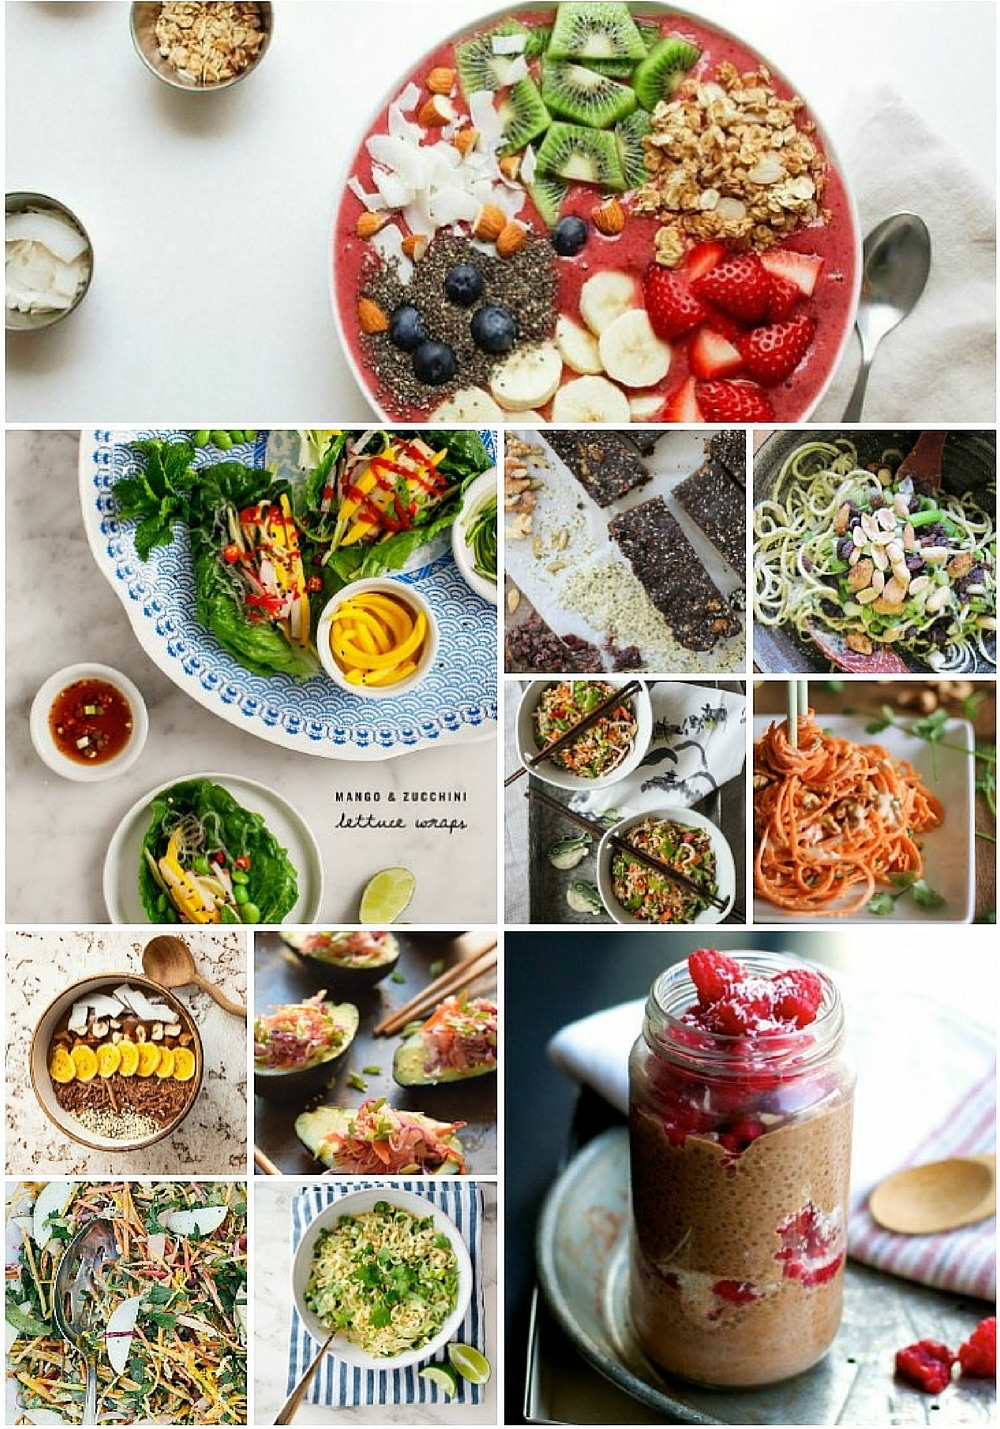 21 awesome raw food recipes for beginners to try yuri elkaim forumfinder Gallery